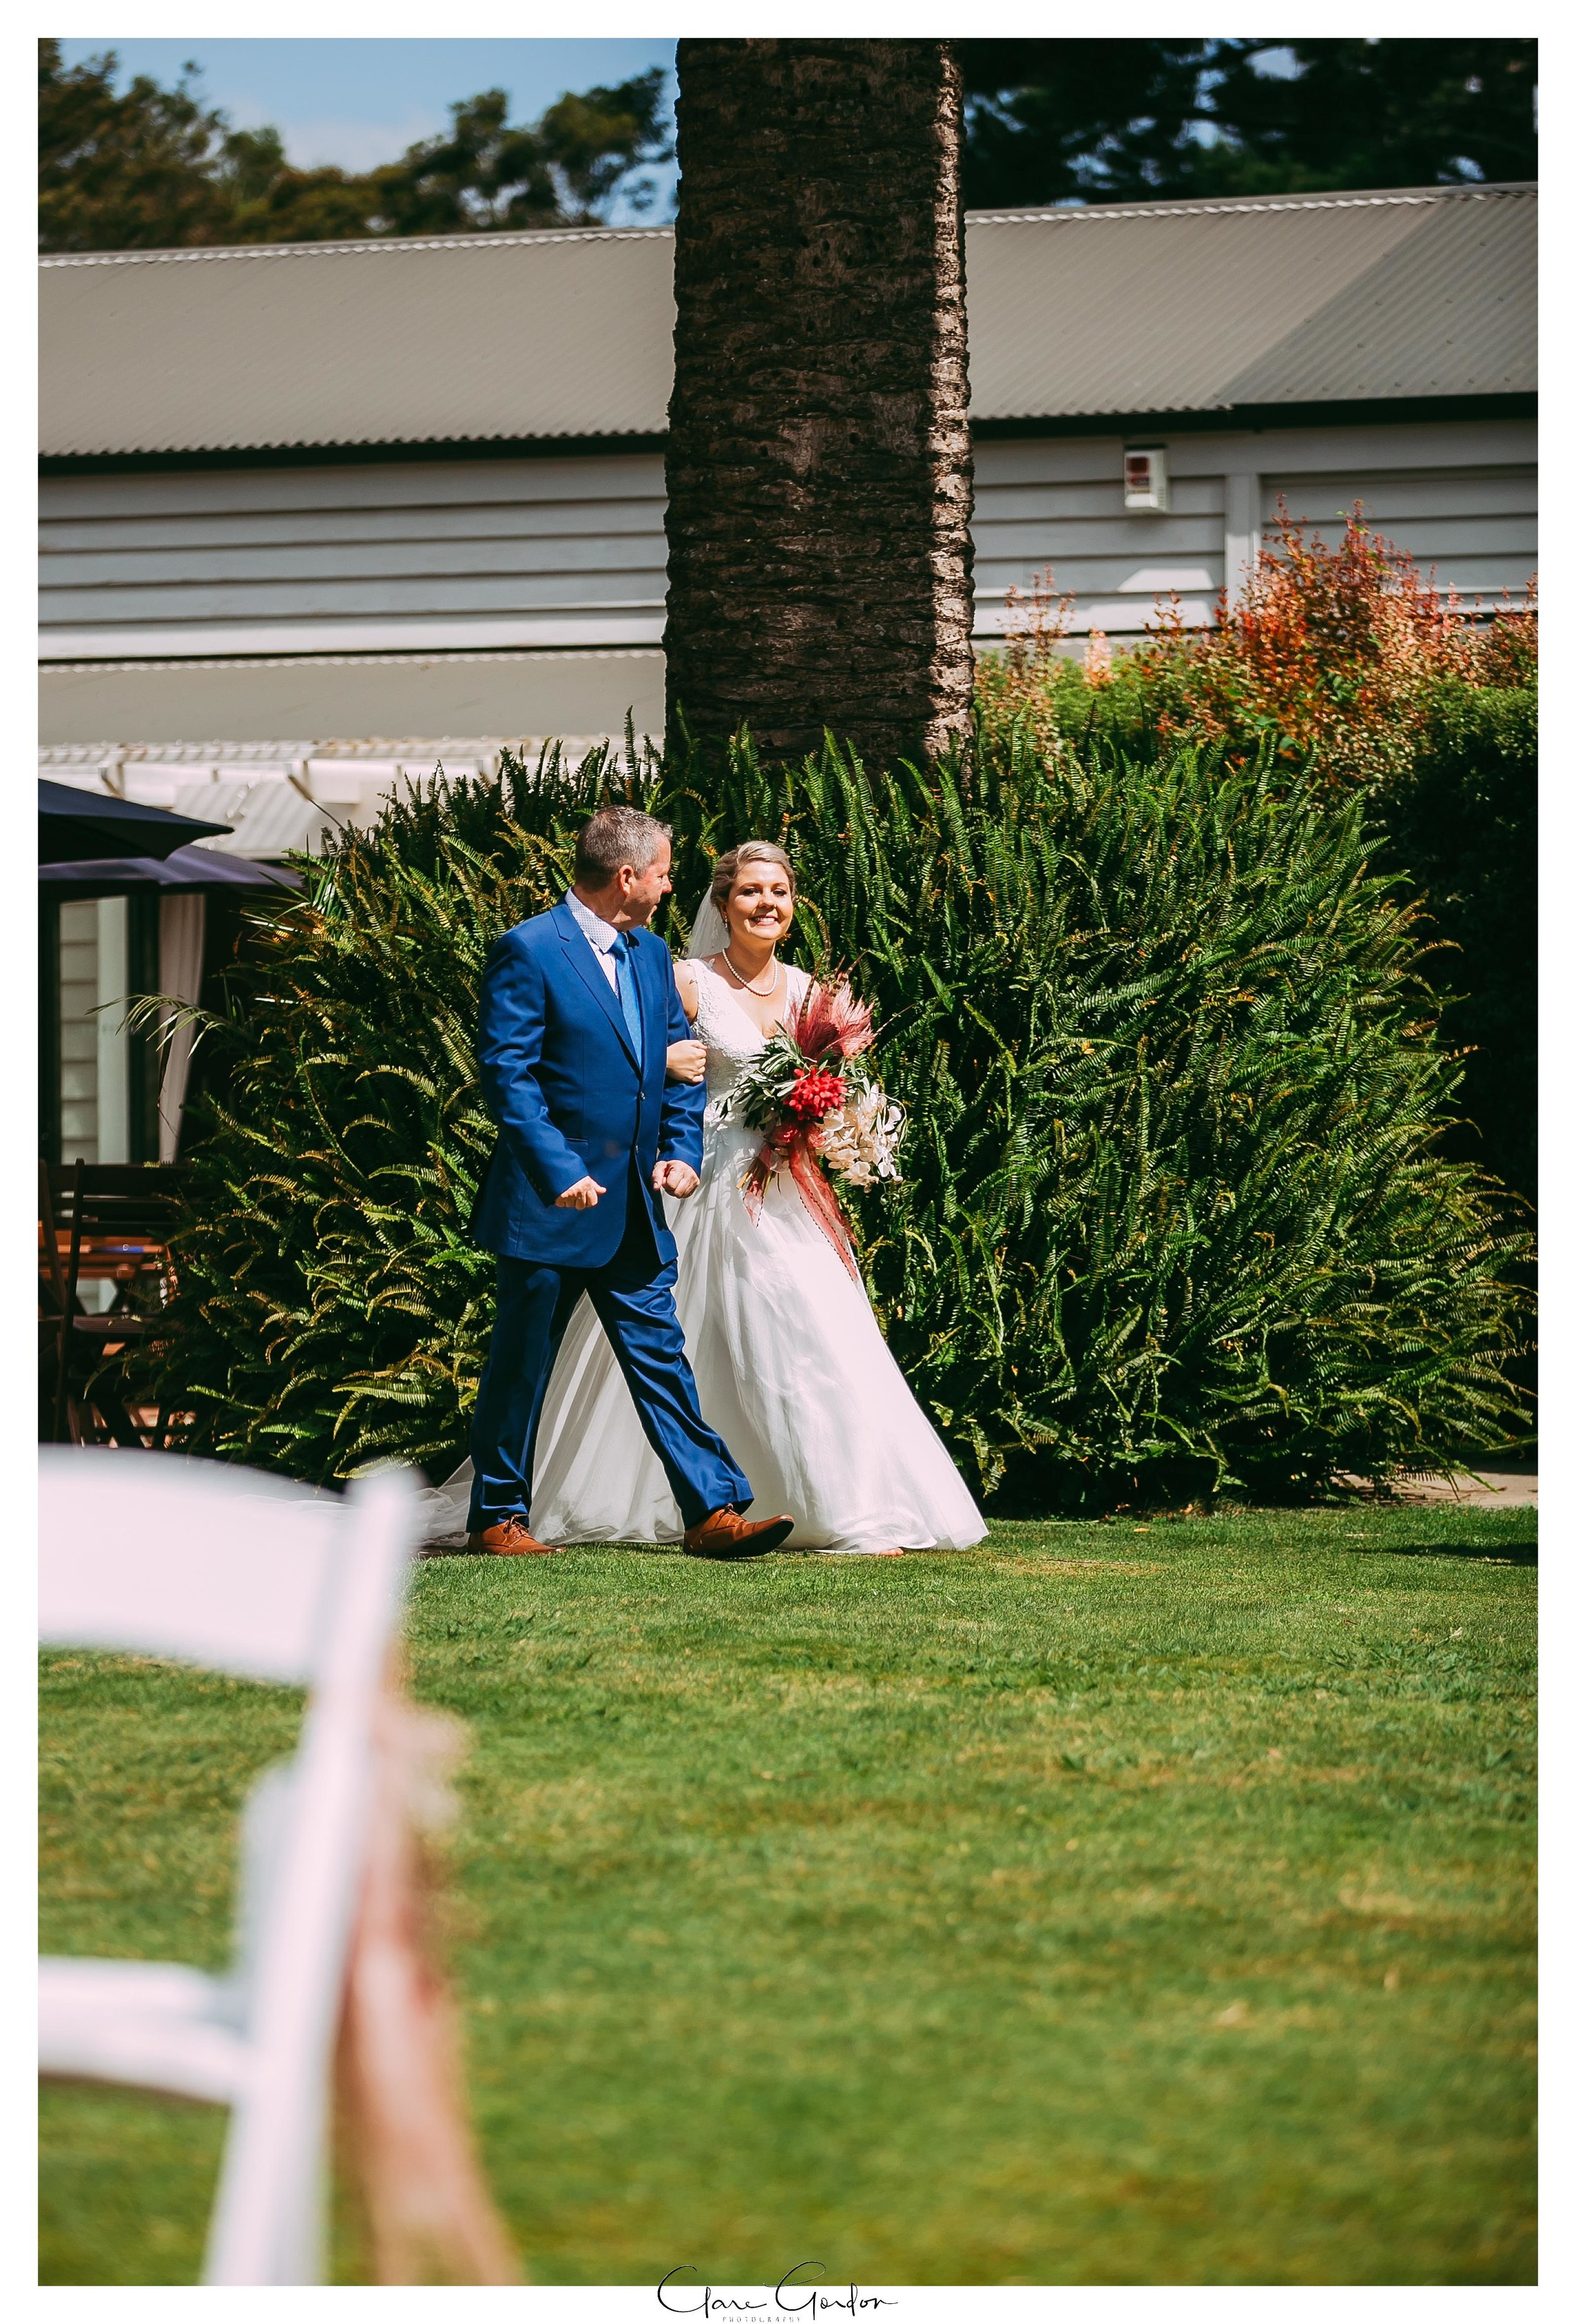 Charlemagne-Lodge-Tauranga-wedding-photo (83).jpg